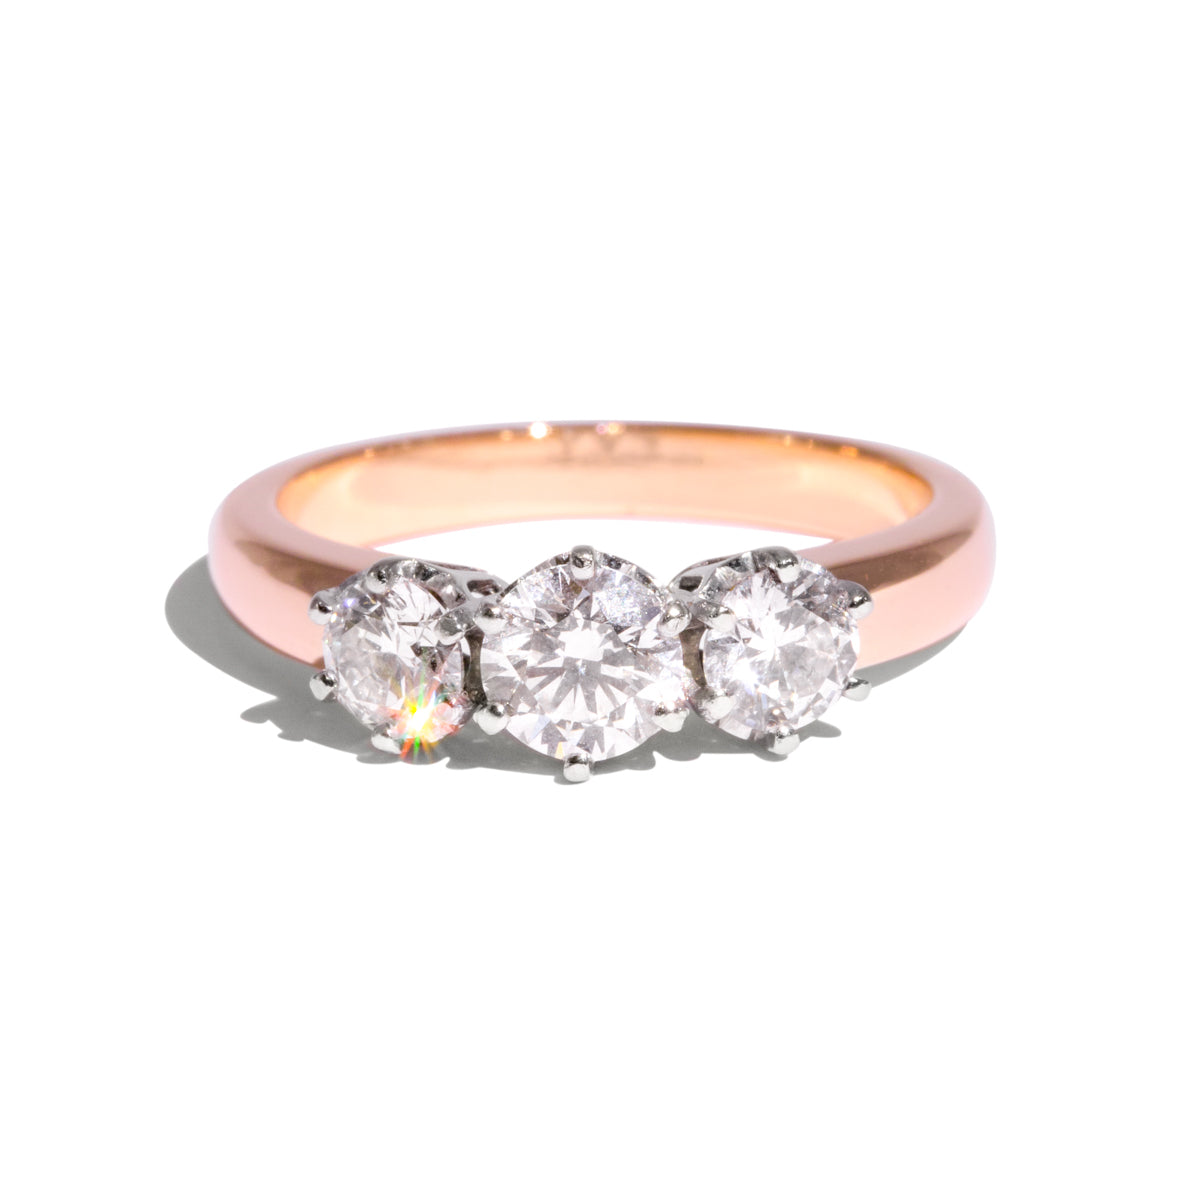 The Margot Vintage Diamond Ring